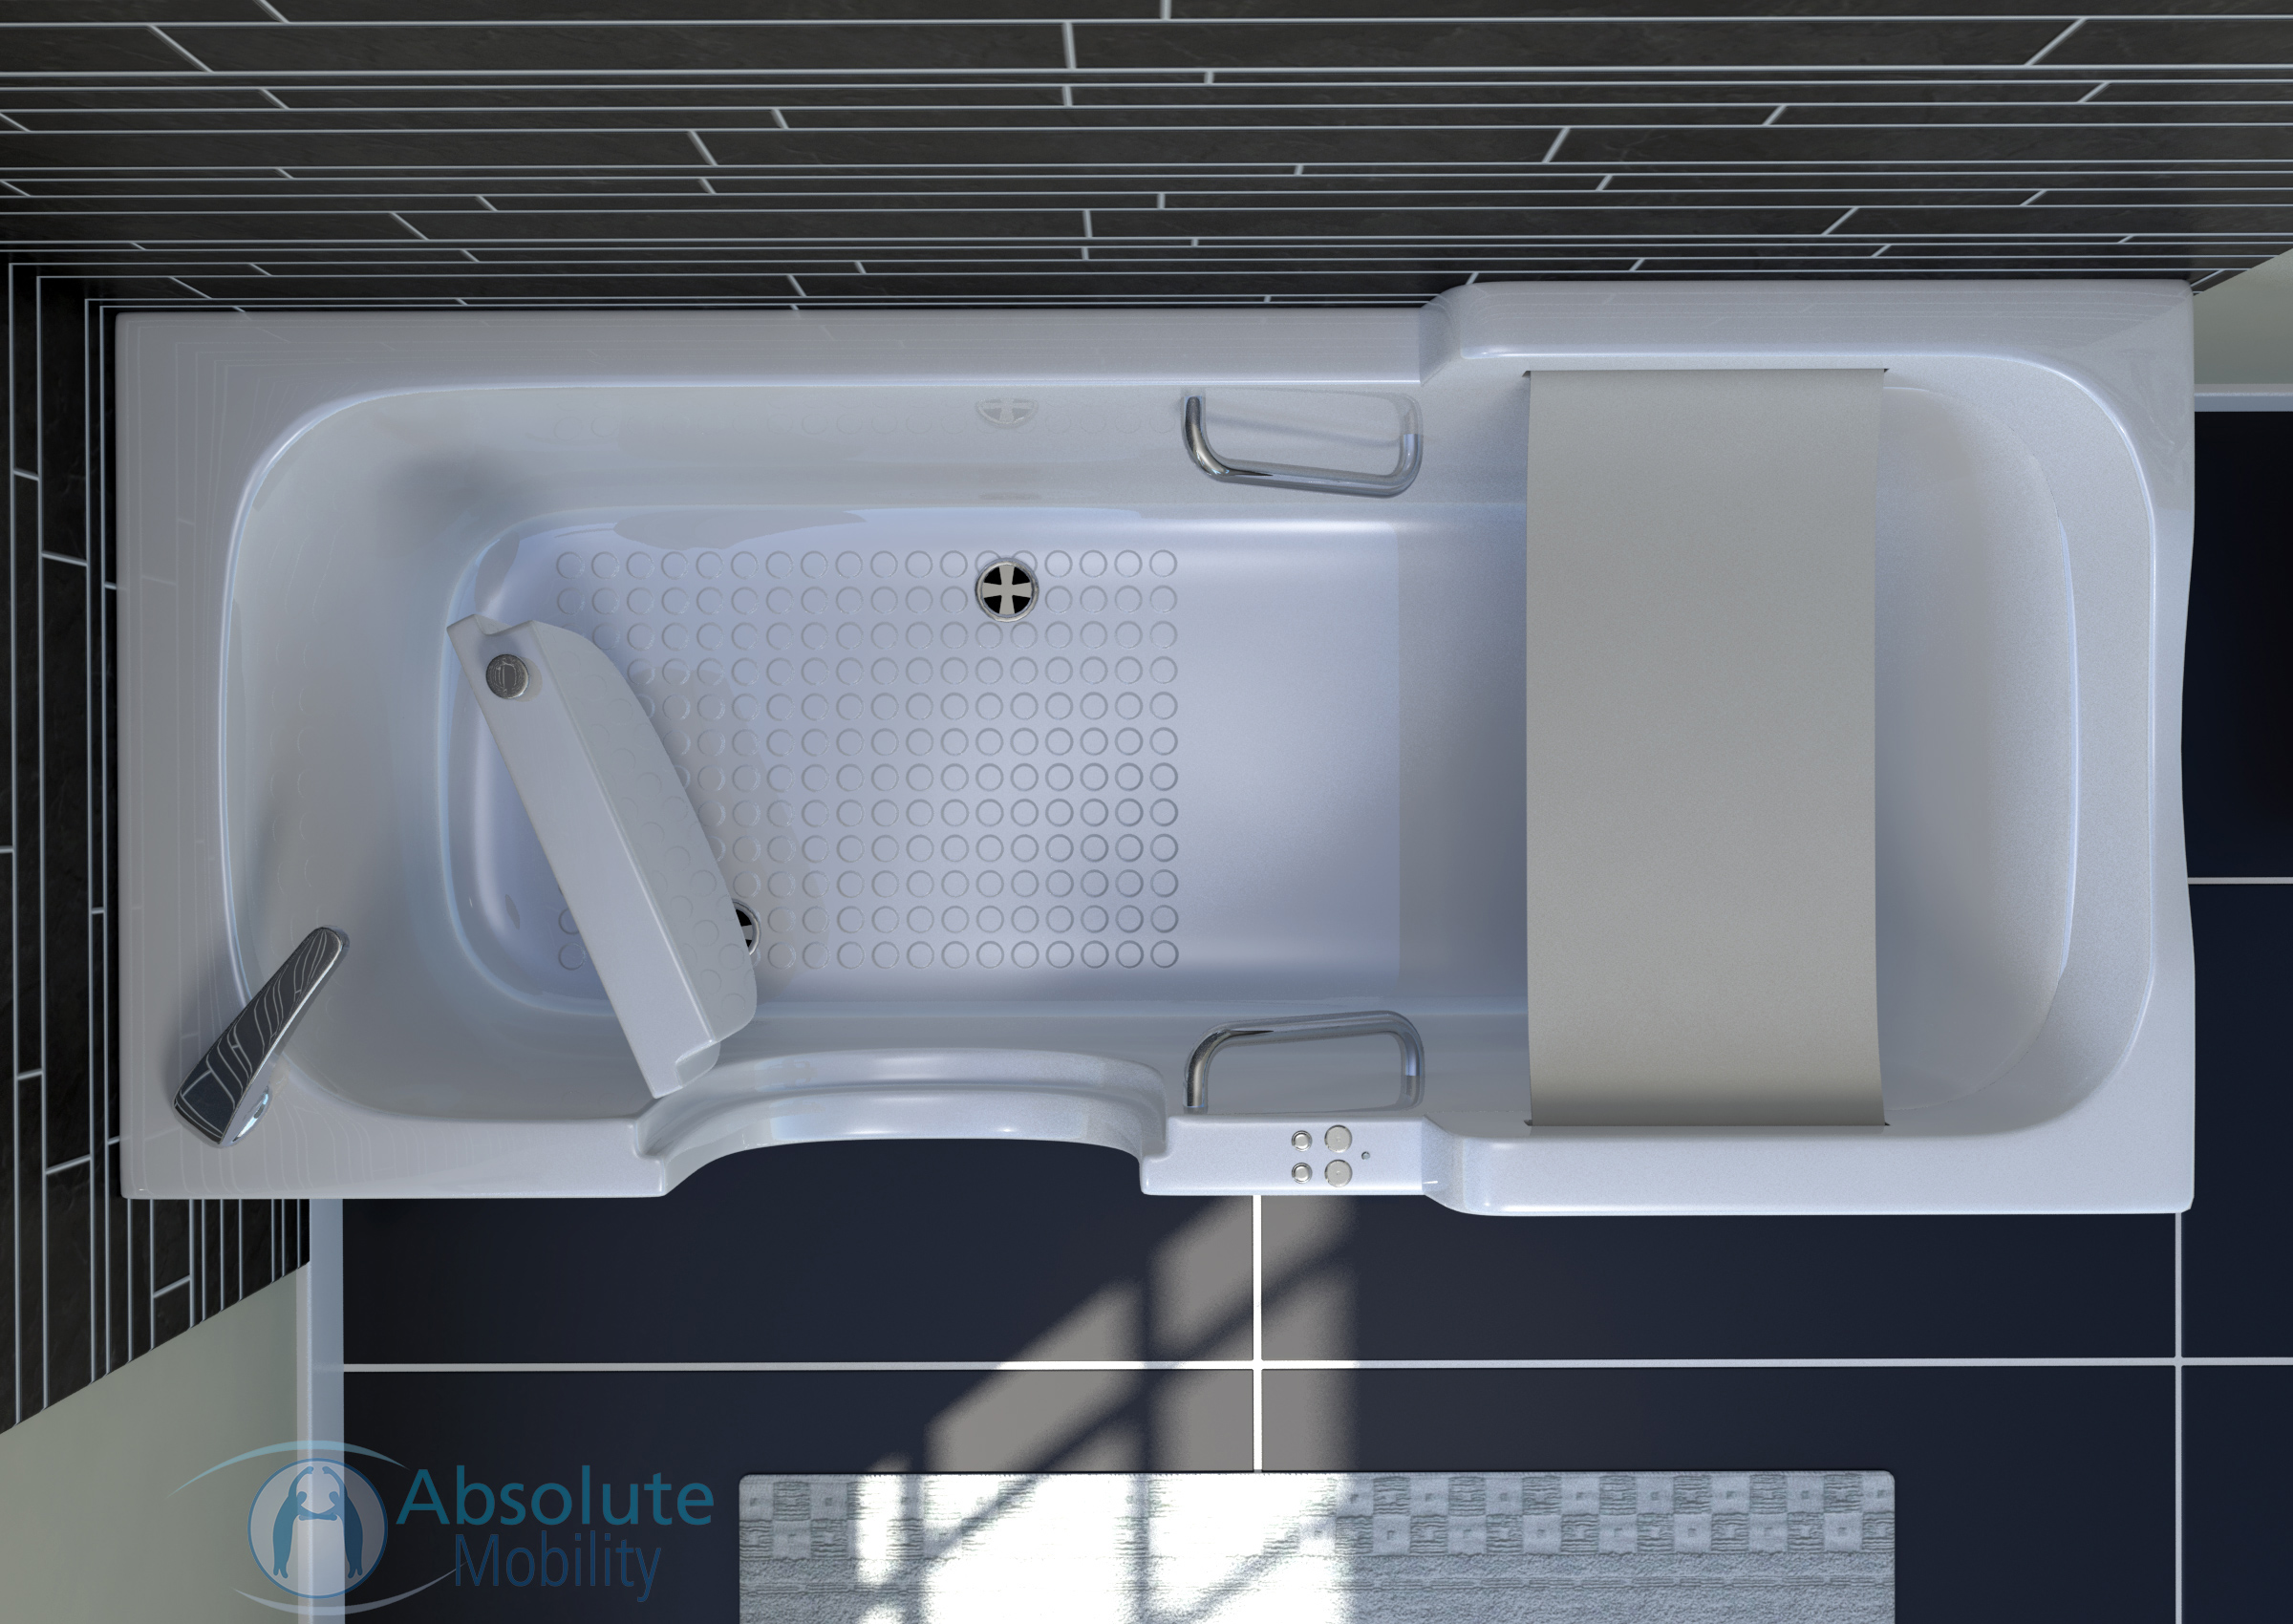 Luxor absolute mobility for Luxor baths